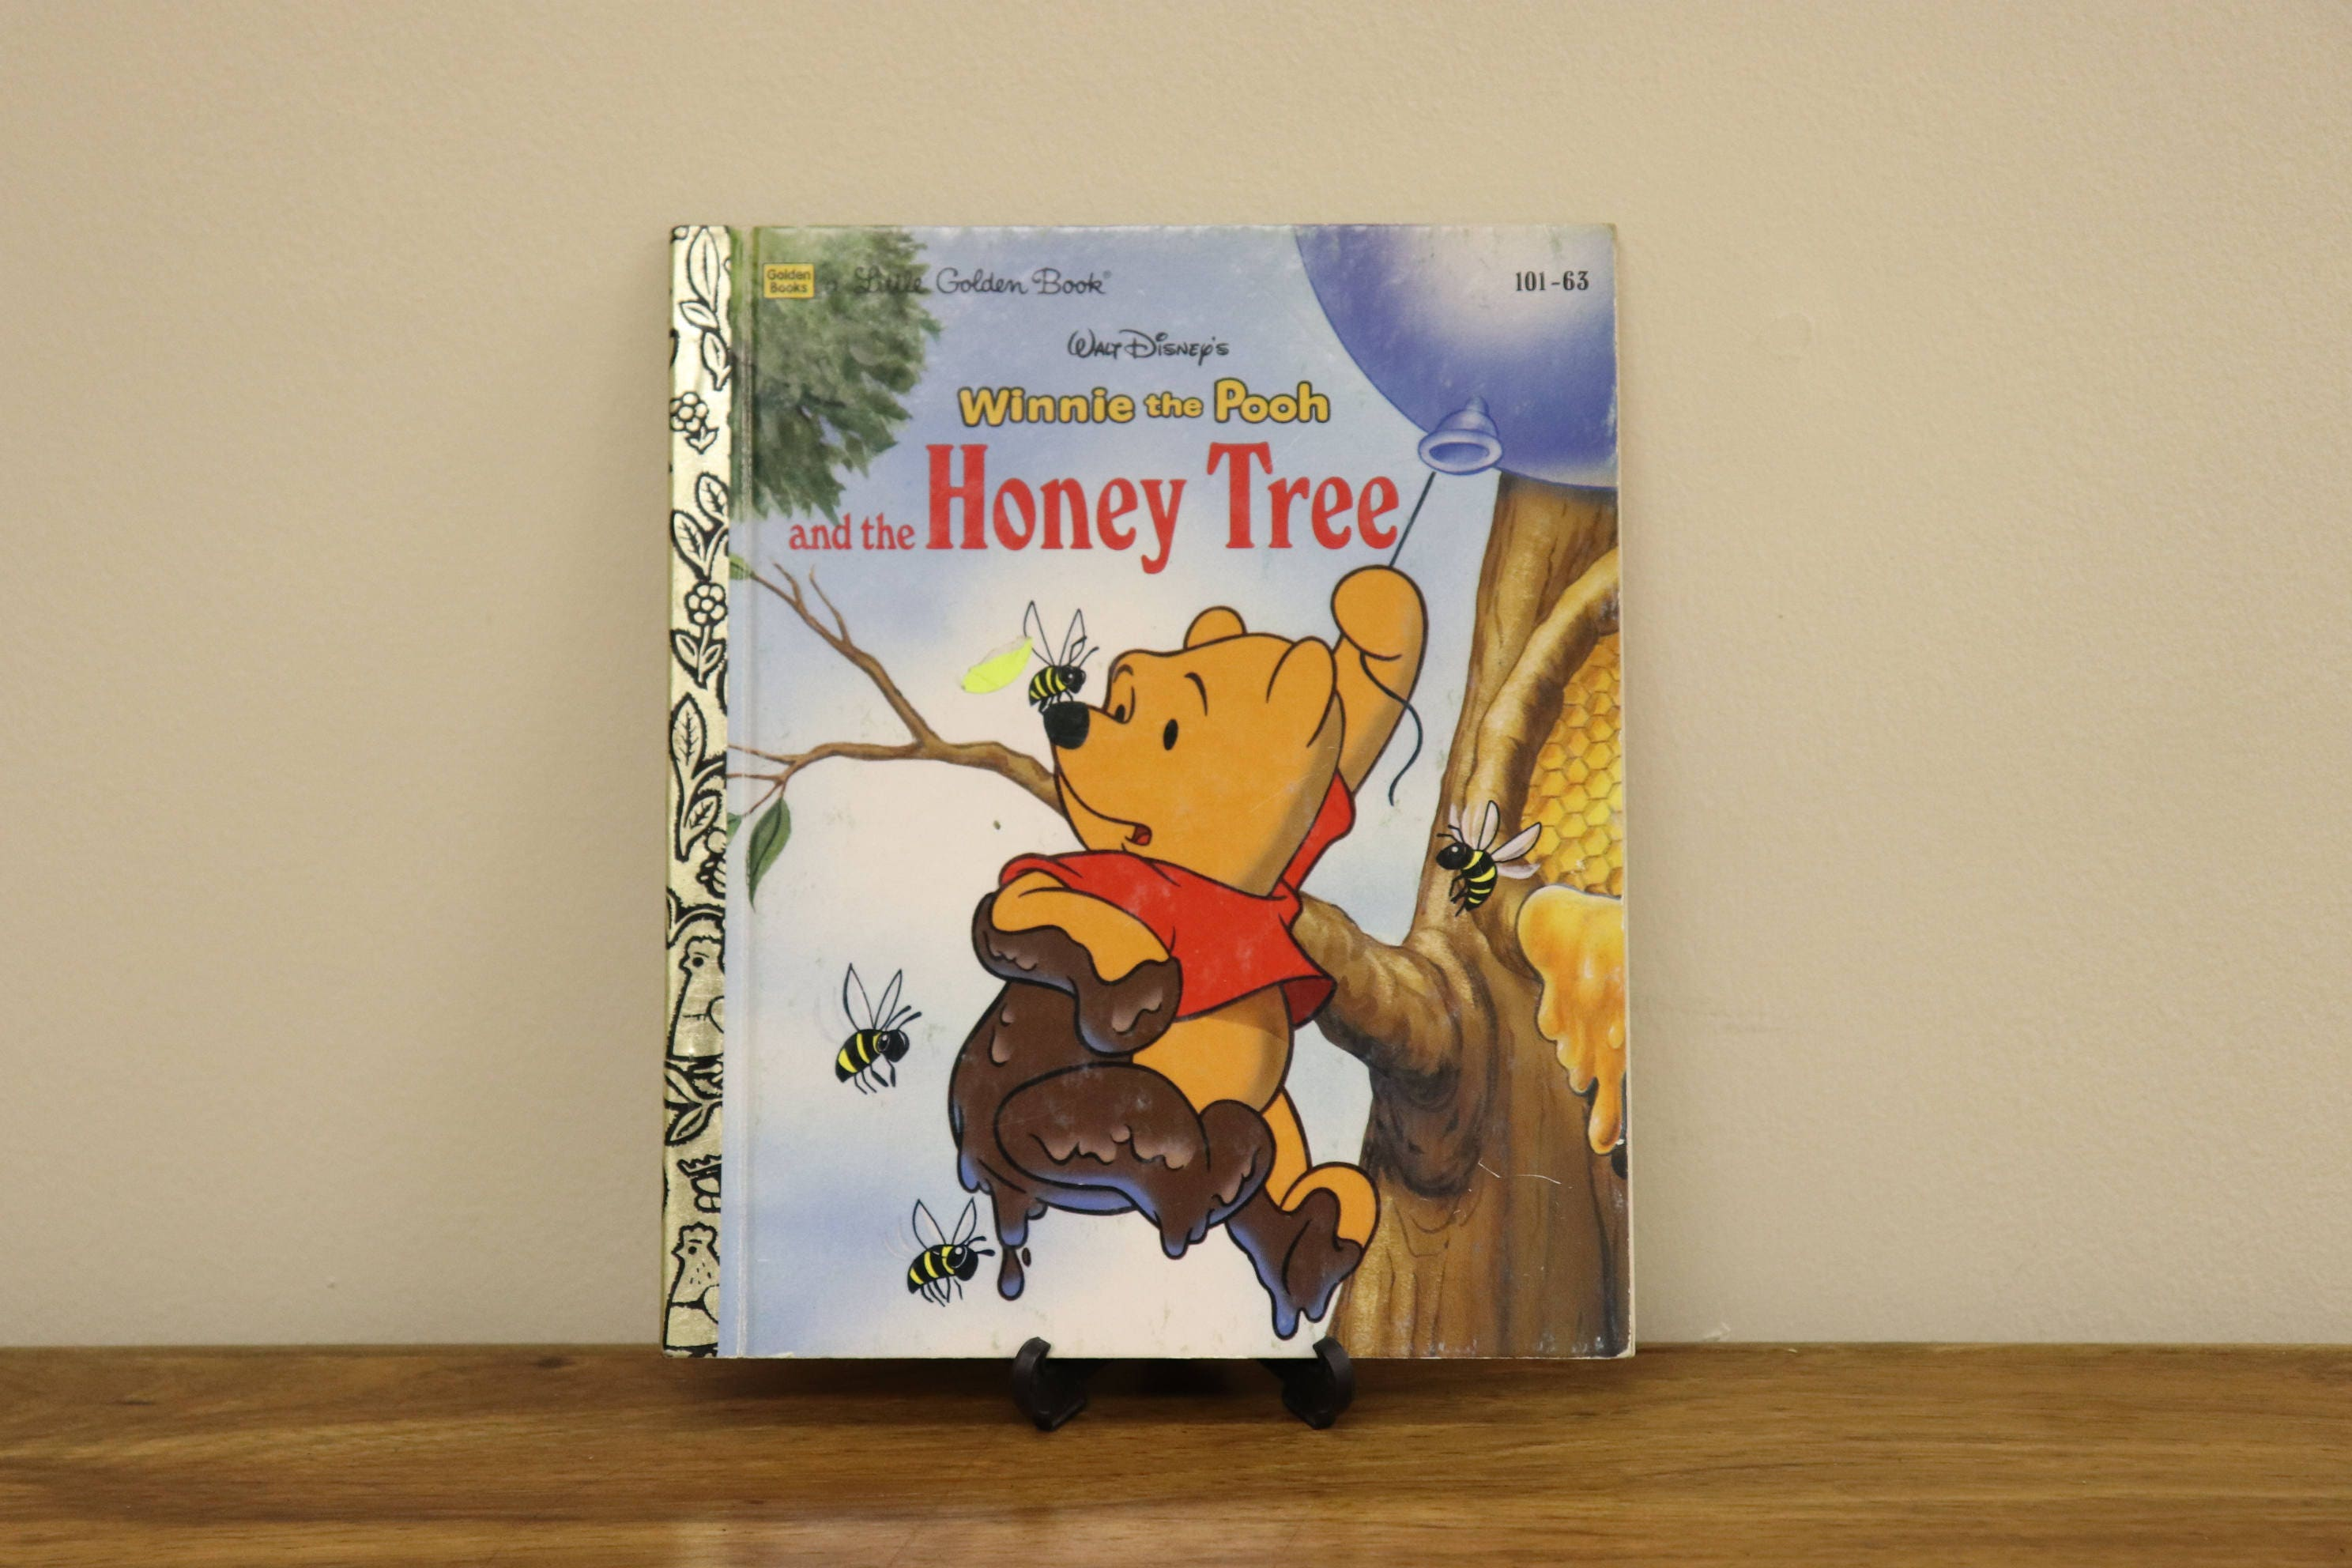 Vintage 1994 Little Golden Book Winnie the Pooh and the